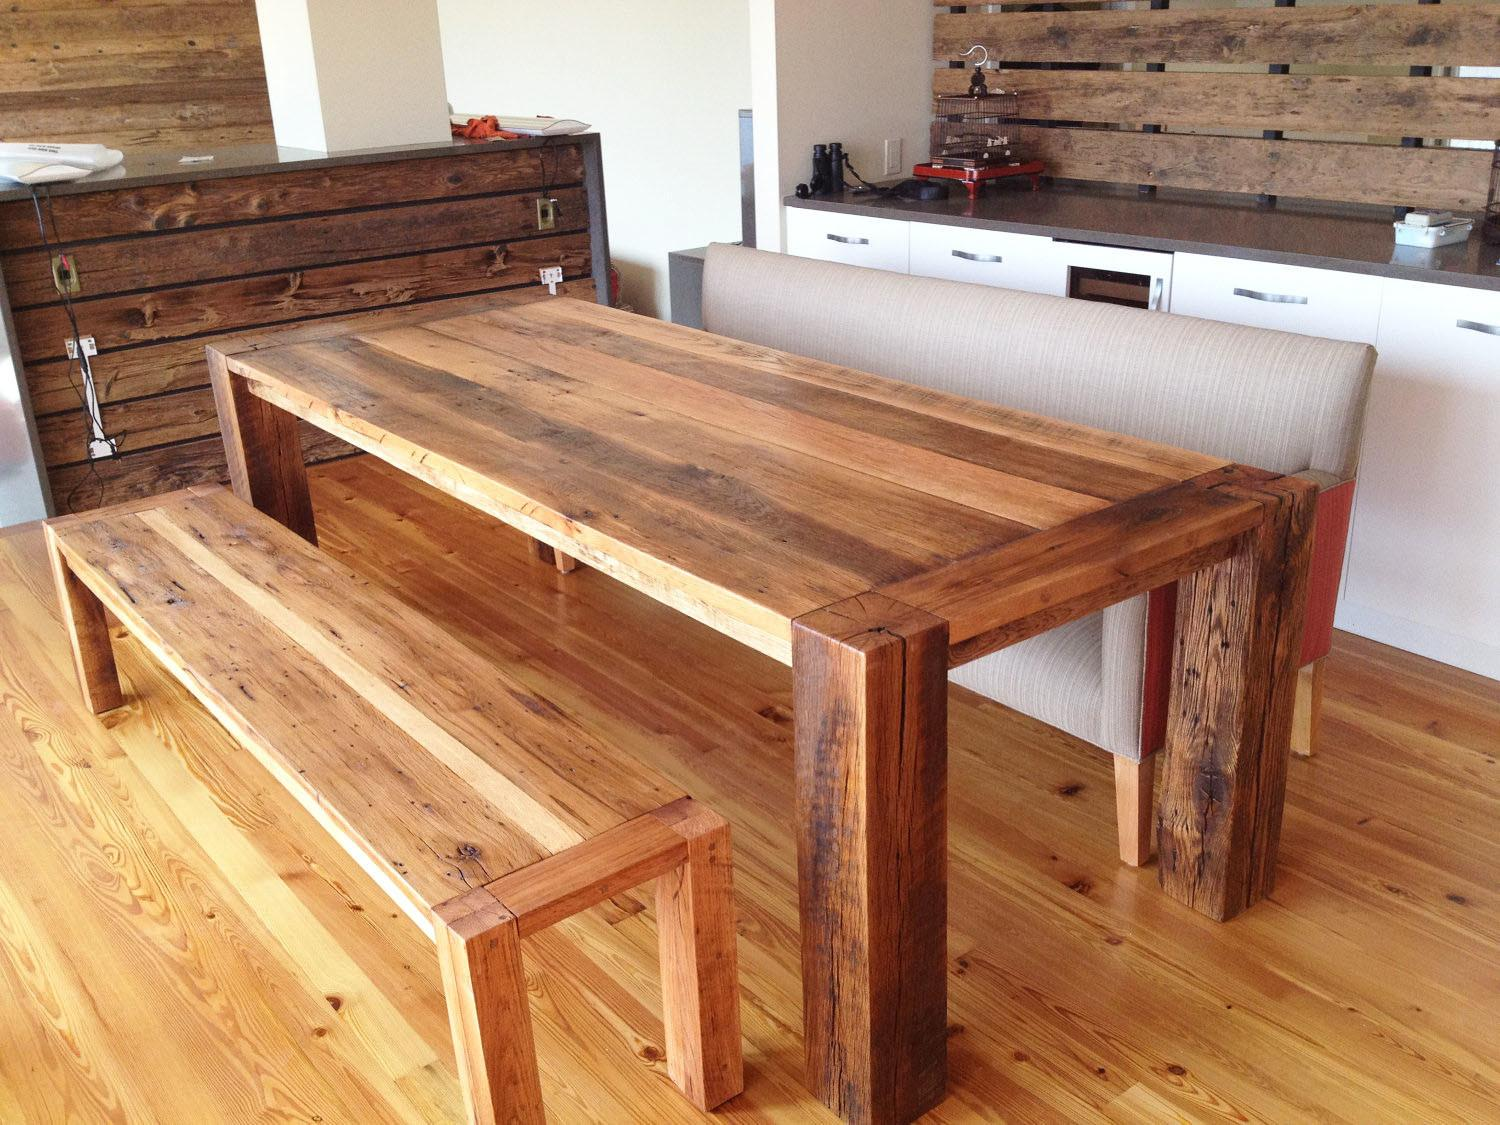 Reclaimed Diy Wood Dining Furniture Small Space